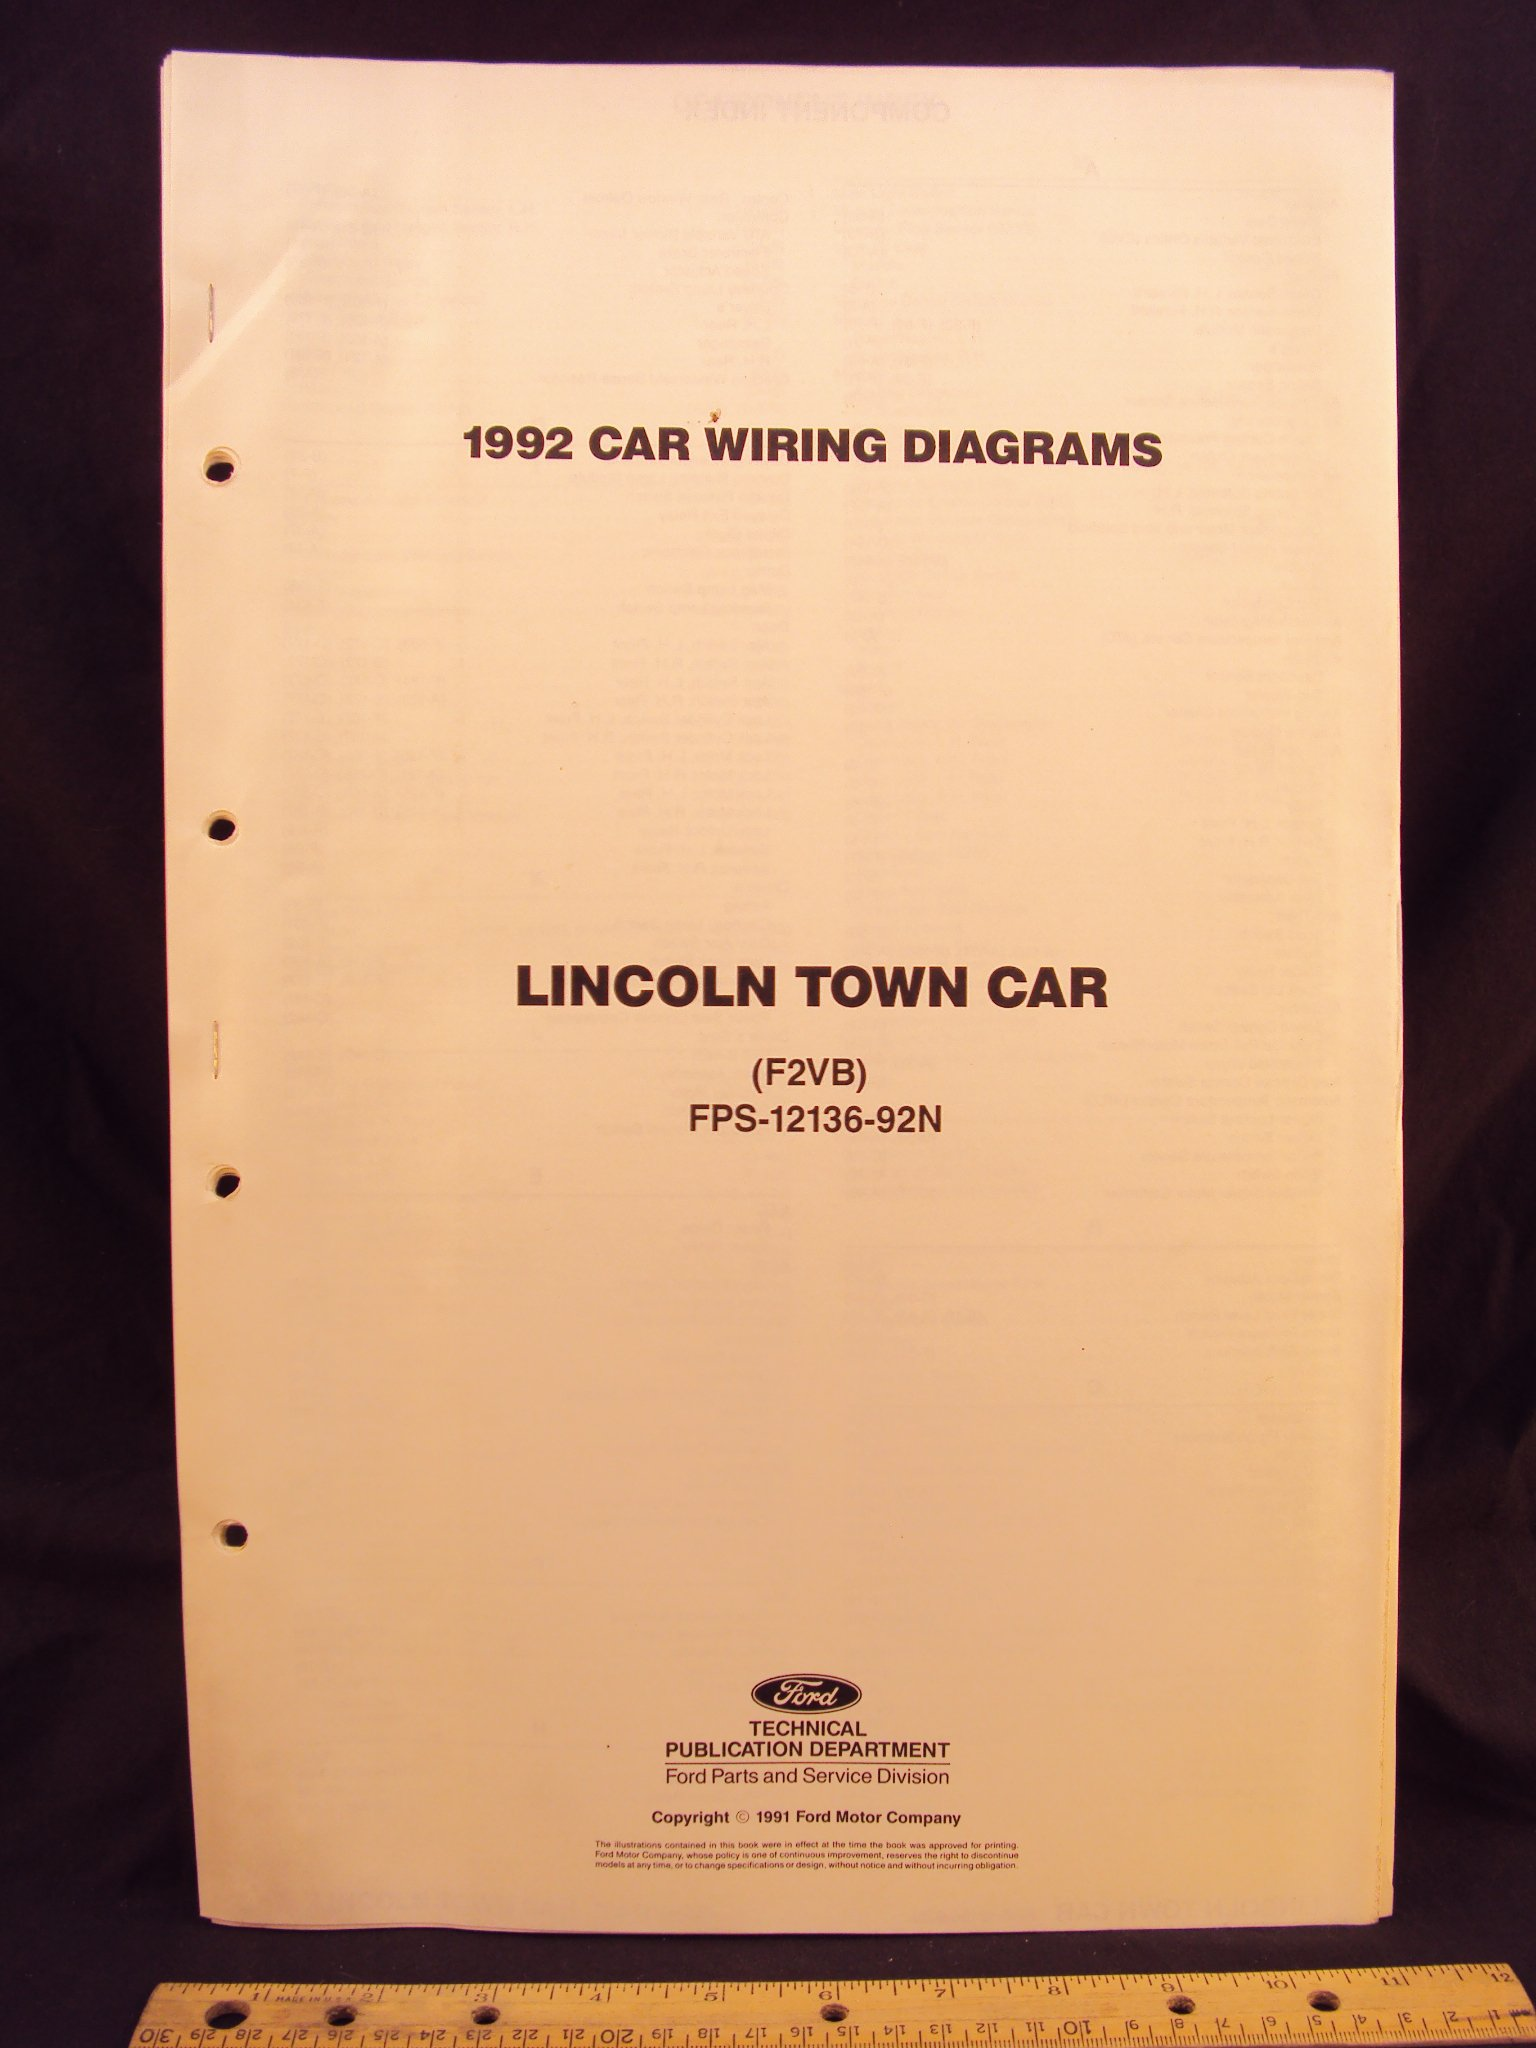 1992 Lincoln Town Car Electrical Wiring Diagrams Schematics Ford Motor Company Books